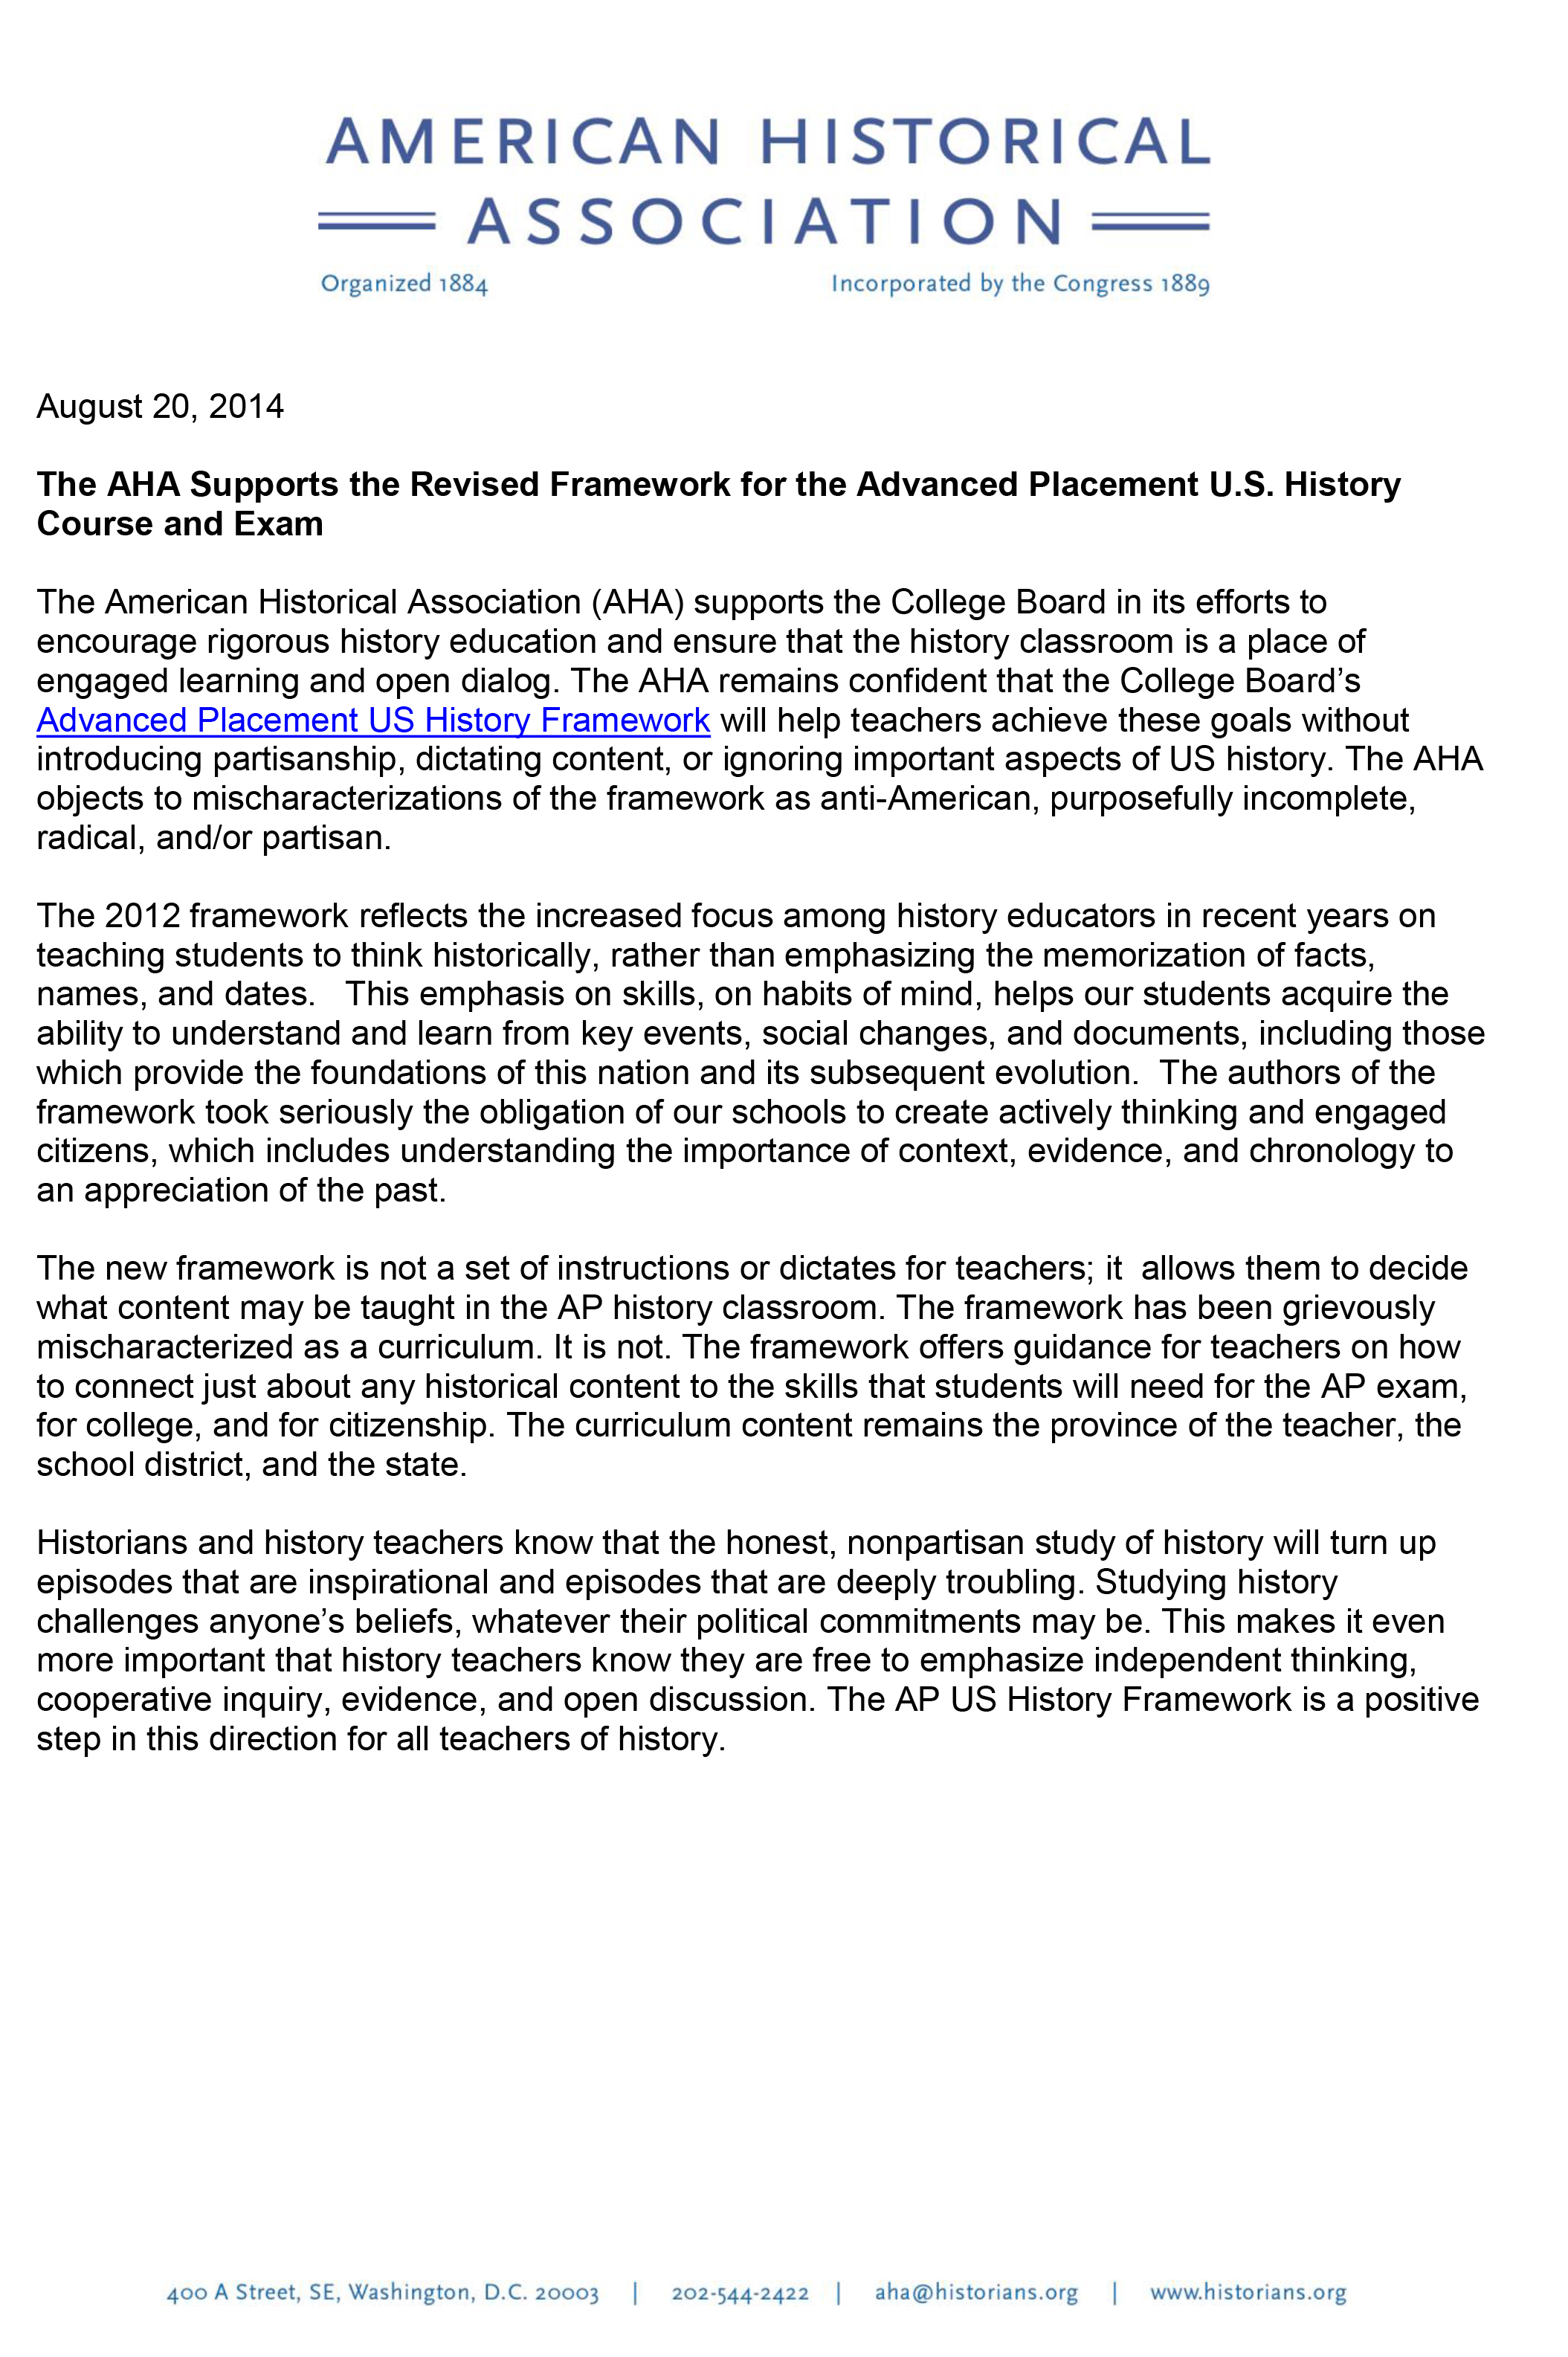 The Aha Supports The Revised Framework For The Us Ap History Exam